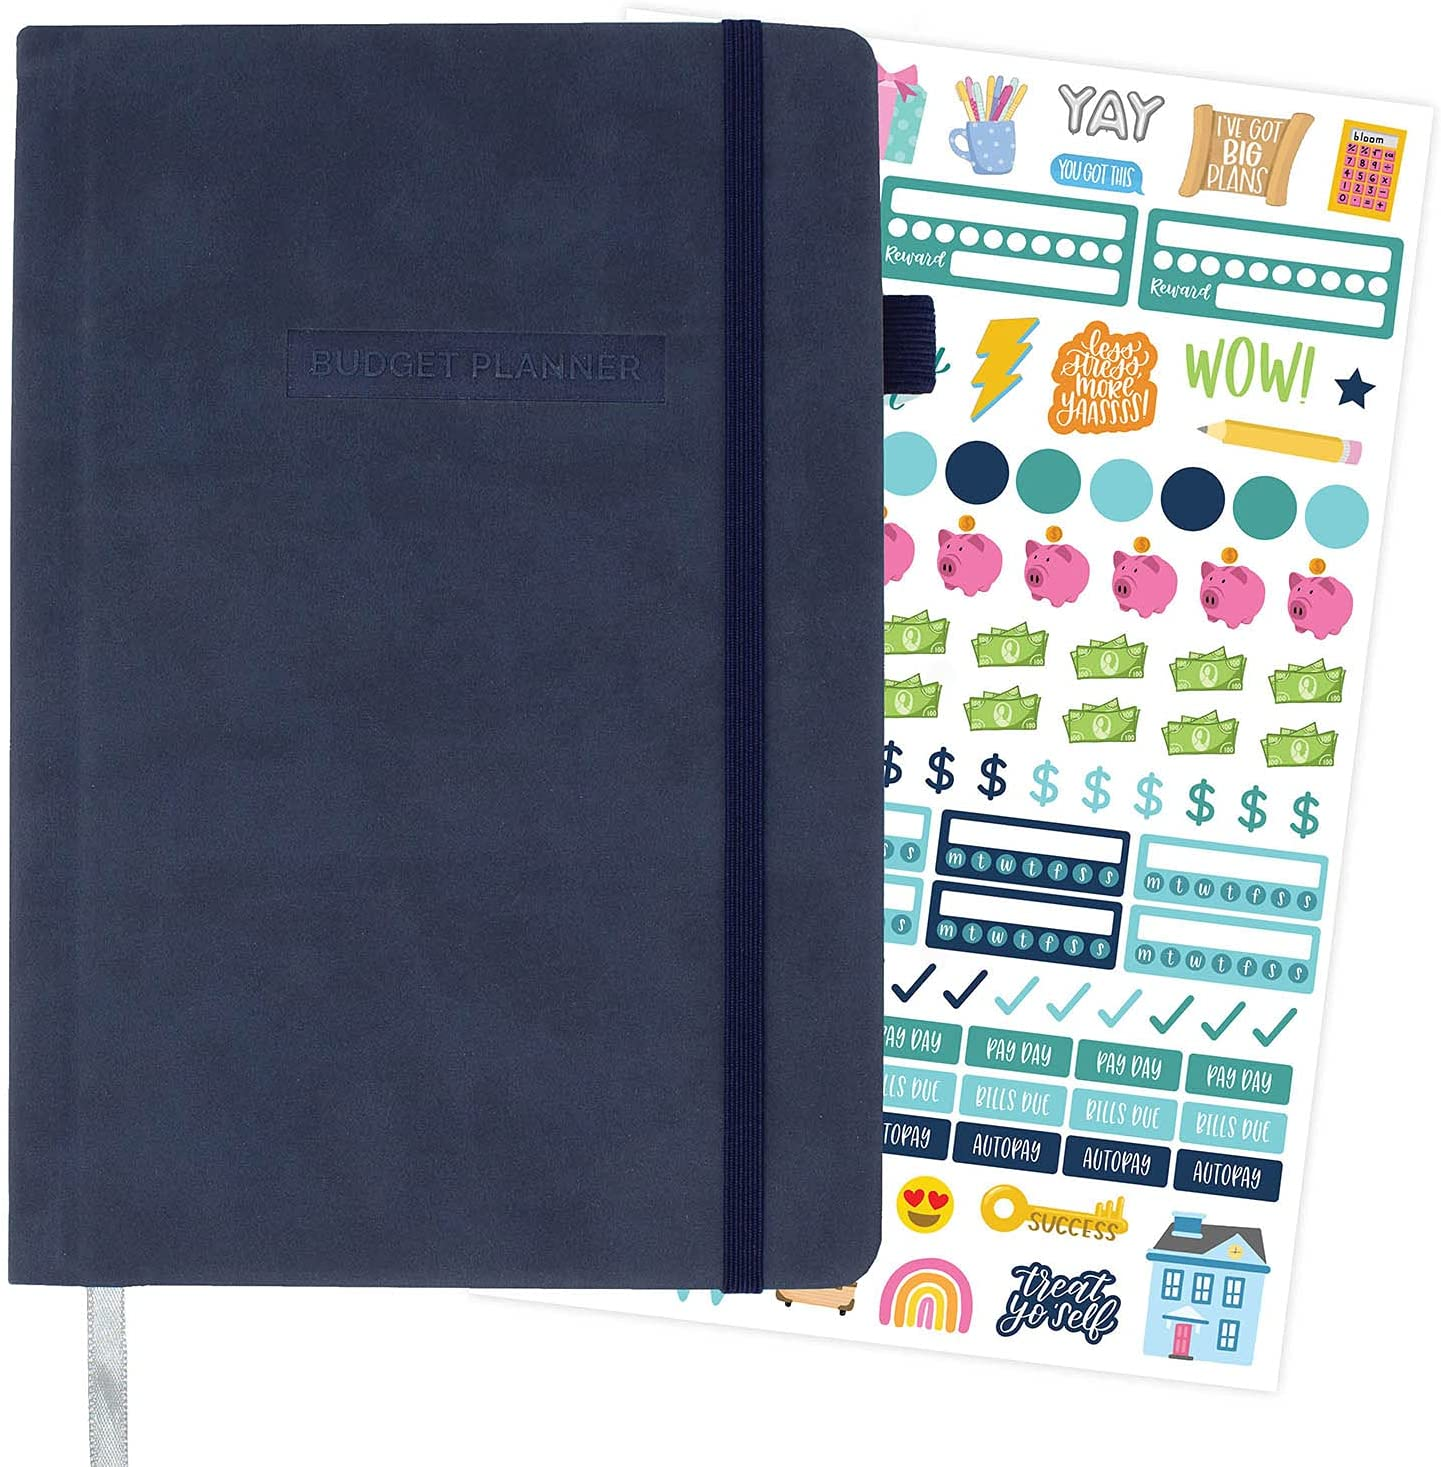 bloom Special price daily Max 54% OFF planners Undated Monthly Planner Finances E Budget